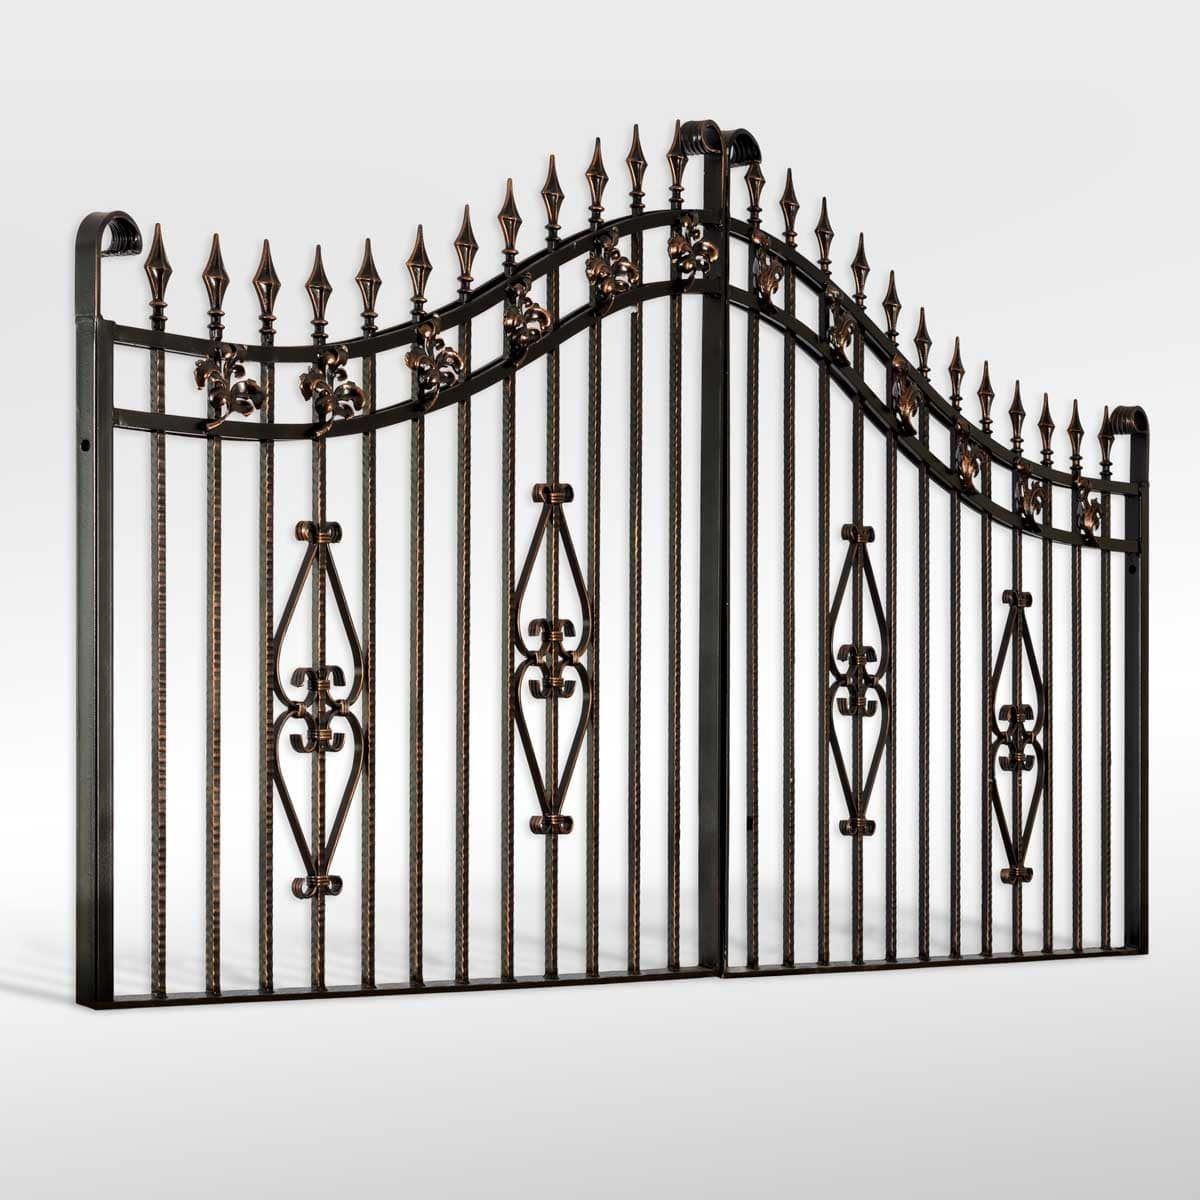 Buy The Parkhurst Wrought Iron Driveway Gate From The Iron Gate